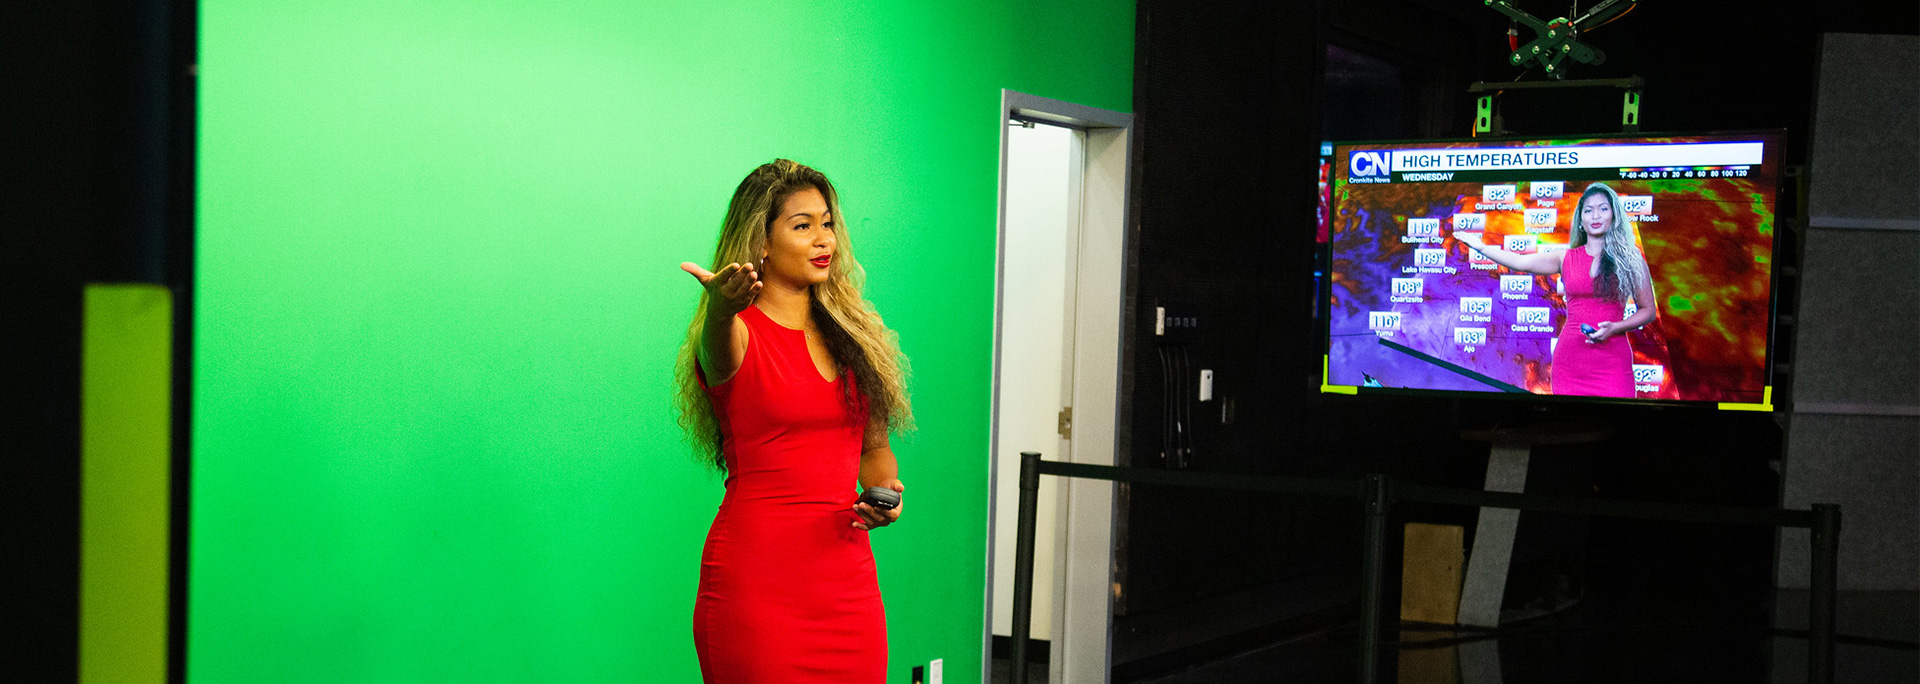 A Cronkite News reporter delivers the weather in front of a green screen